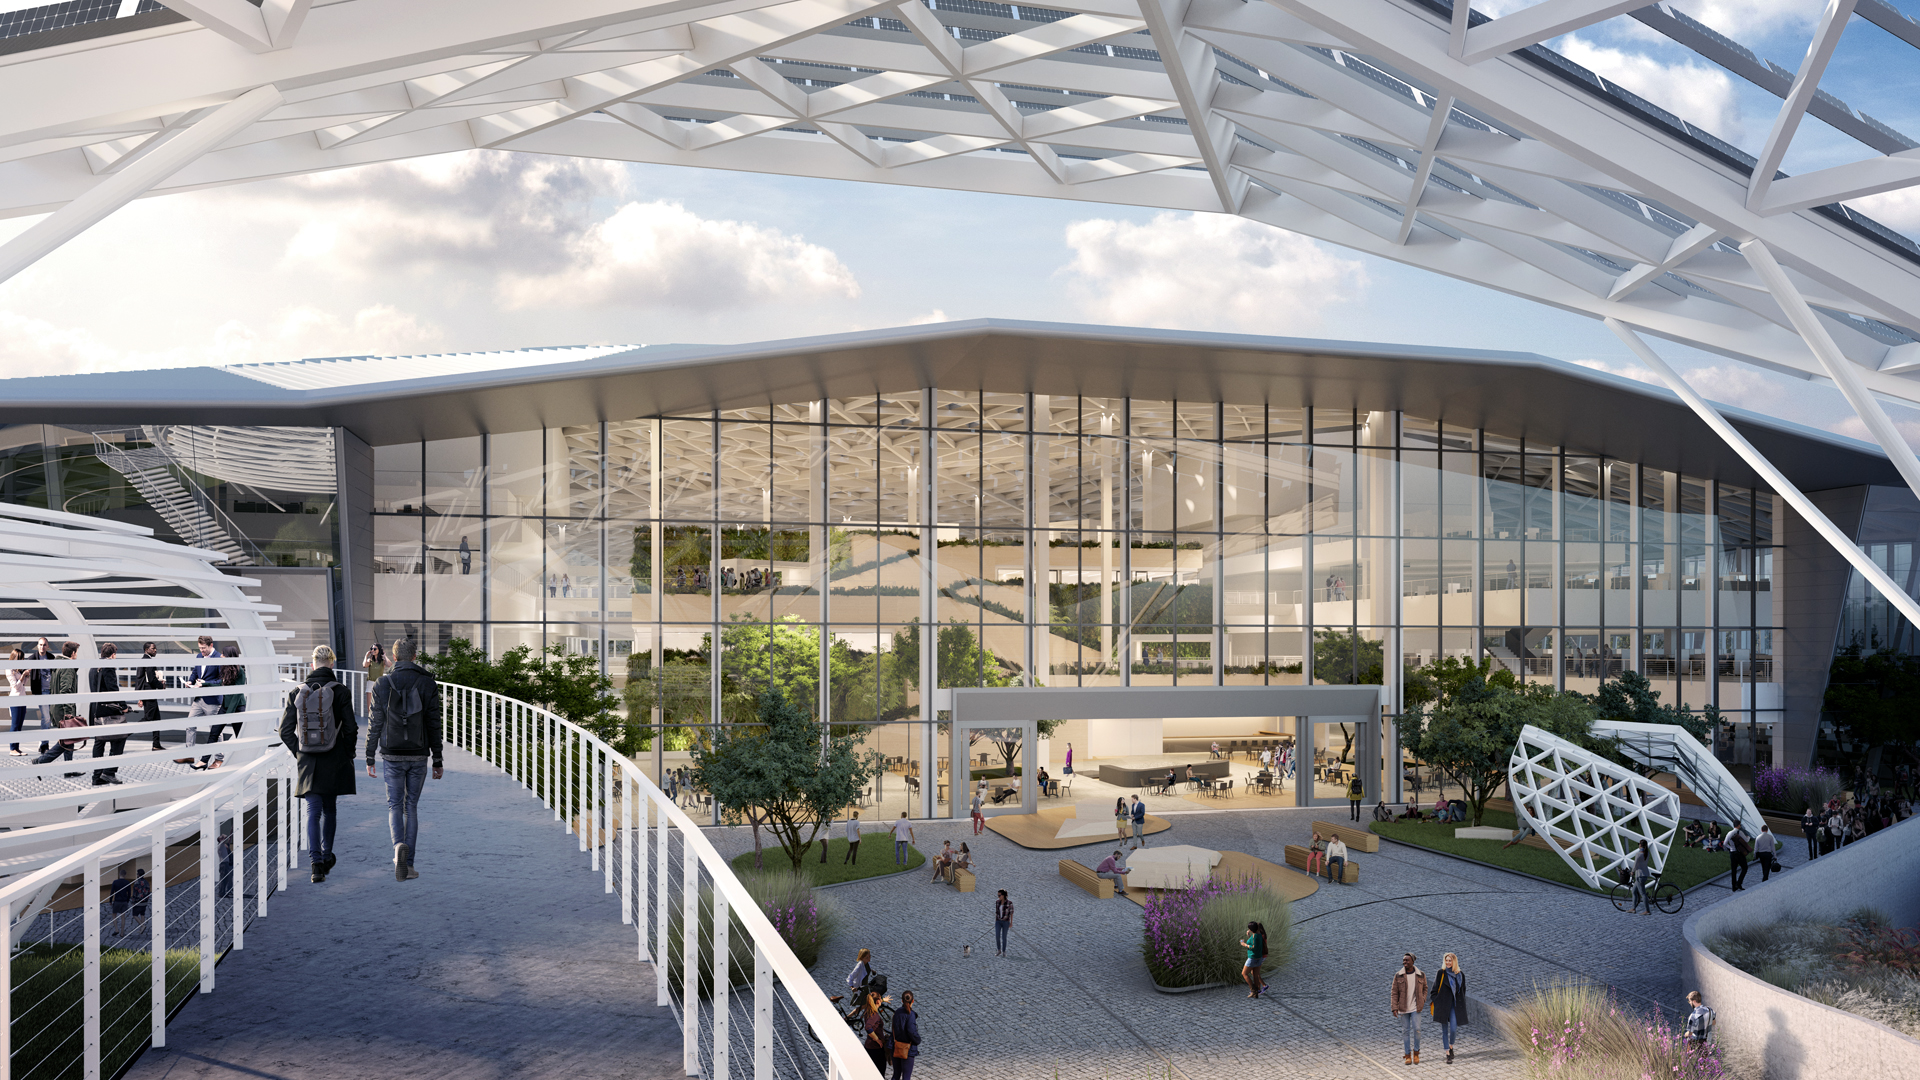 This is the first look at Nvidia's wild new 750,000 sq ft building